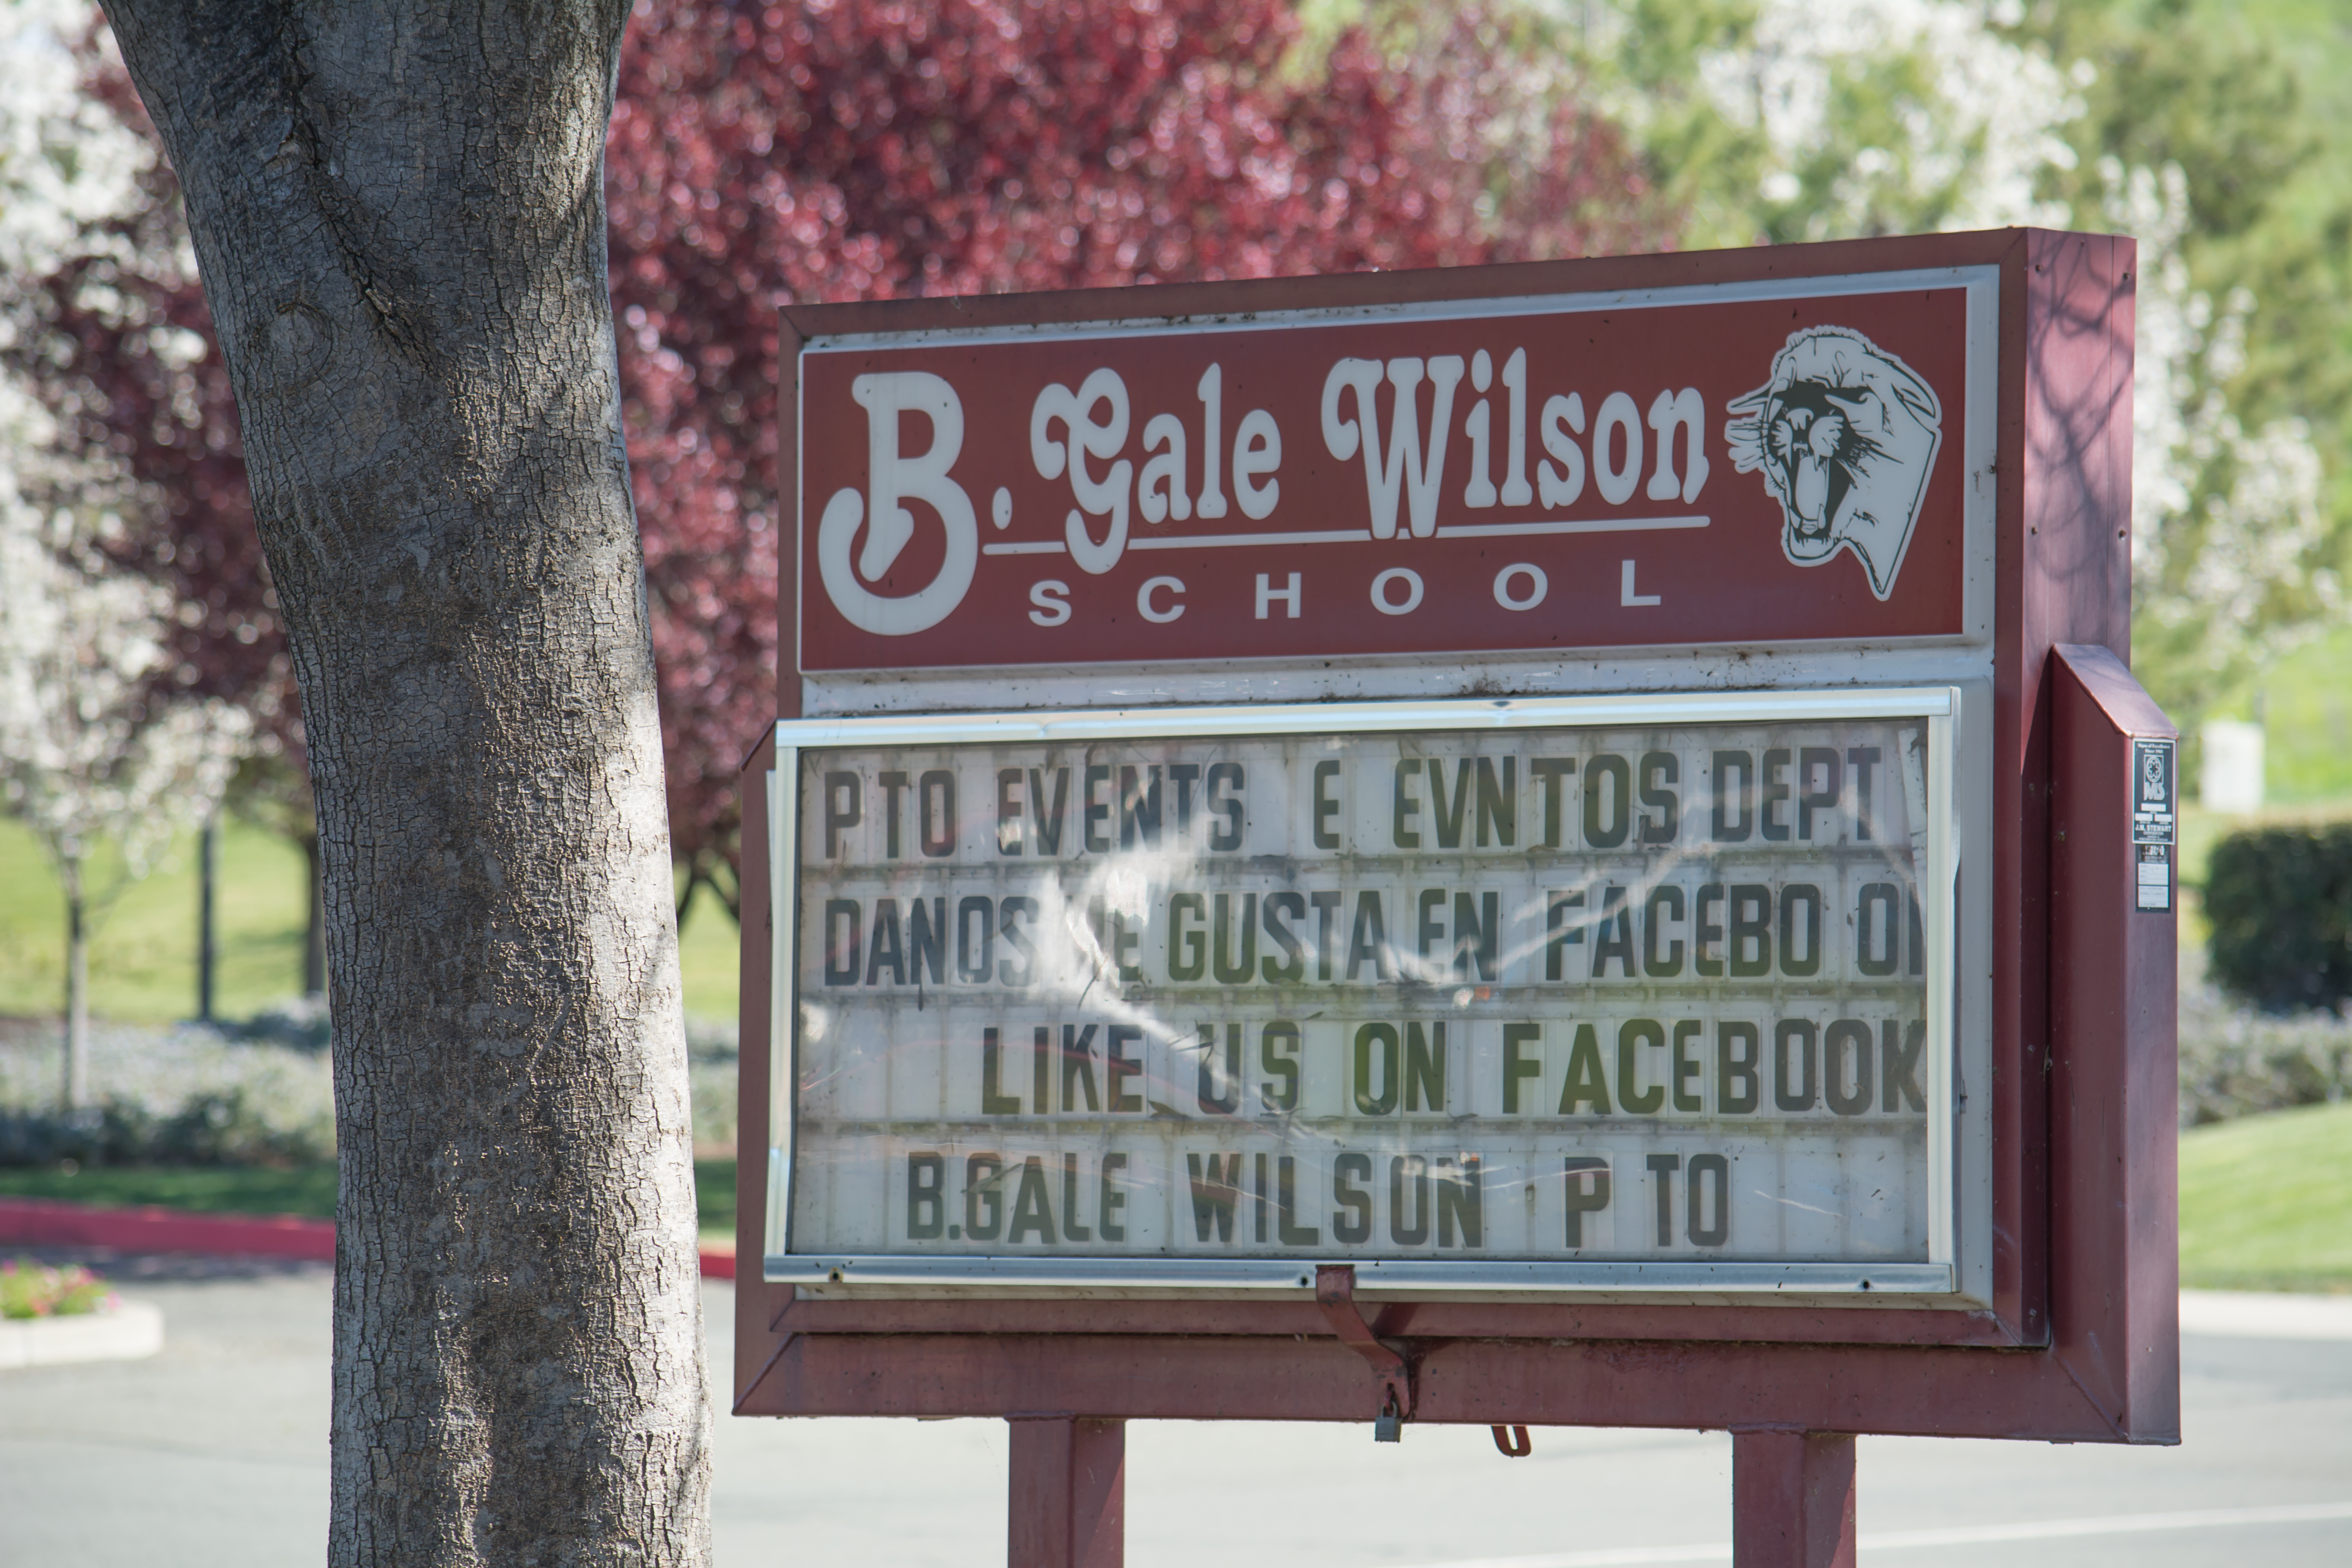 Secondary Ed (Beta)  School Sites throughout B Gale Wilson Calendar